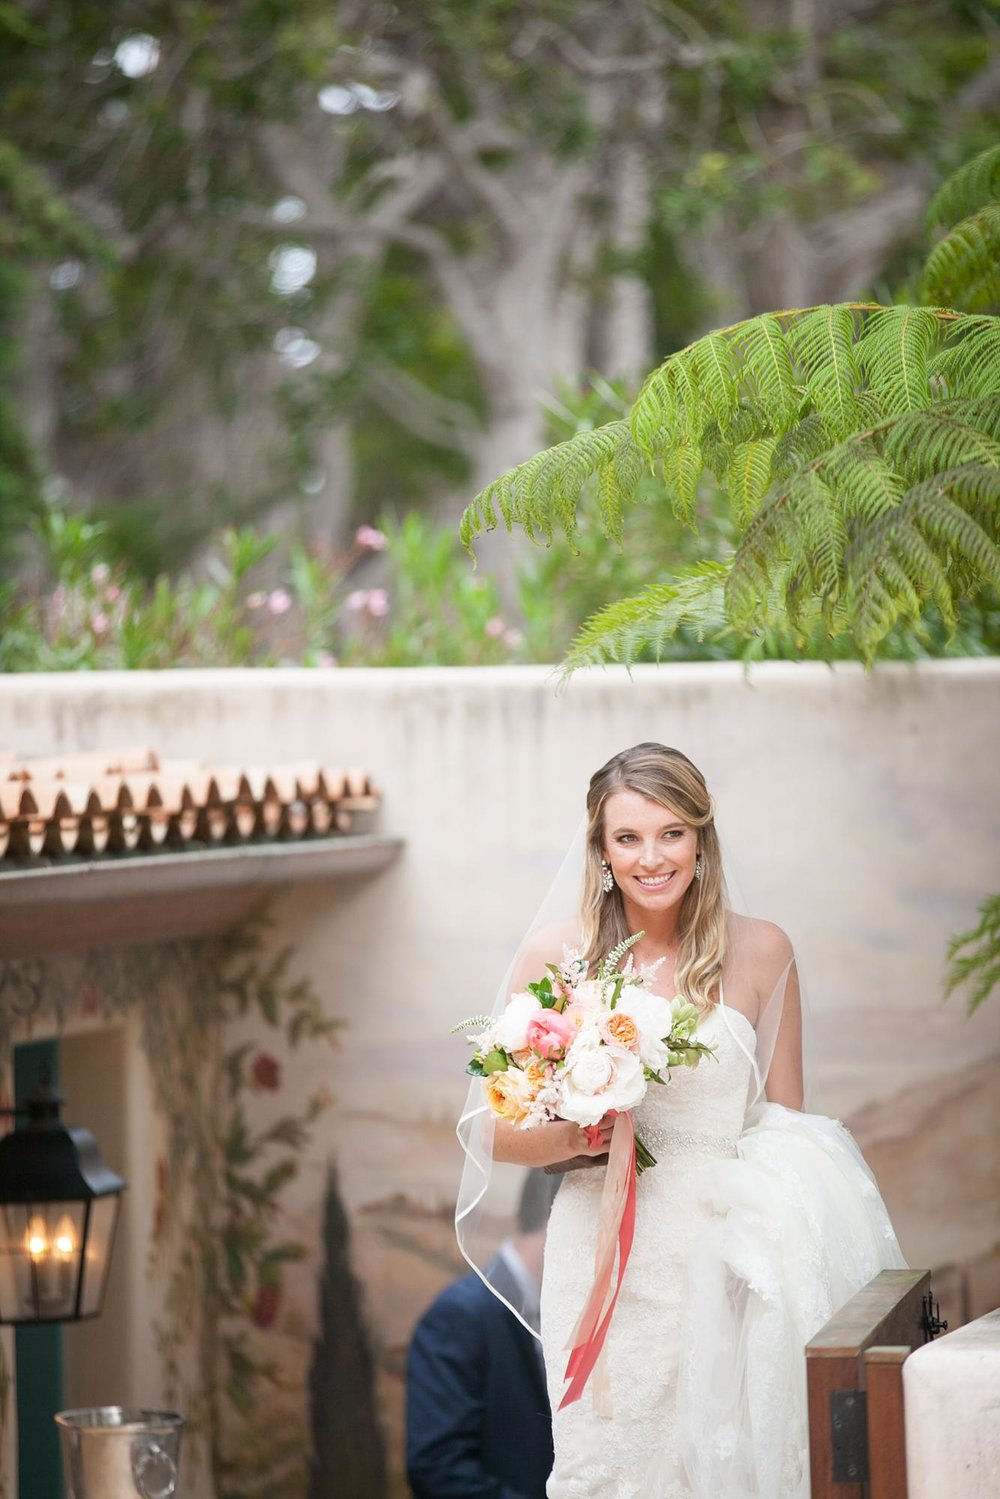 Santa Barbara Private Estate Wedding | Miki & Sonja Photography | mikiandsonja.com